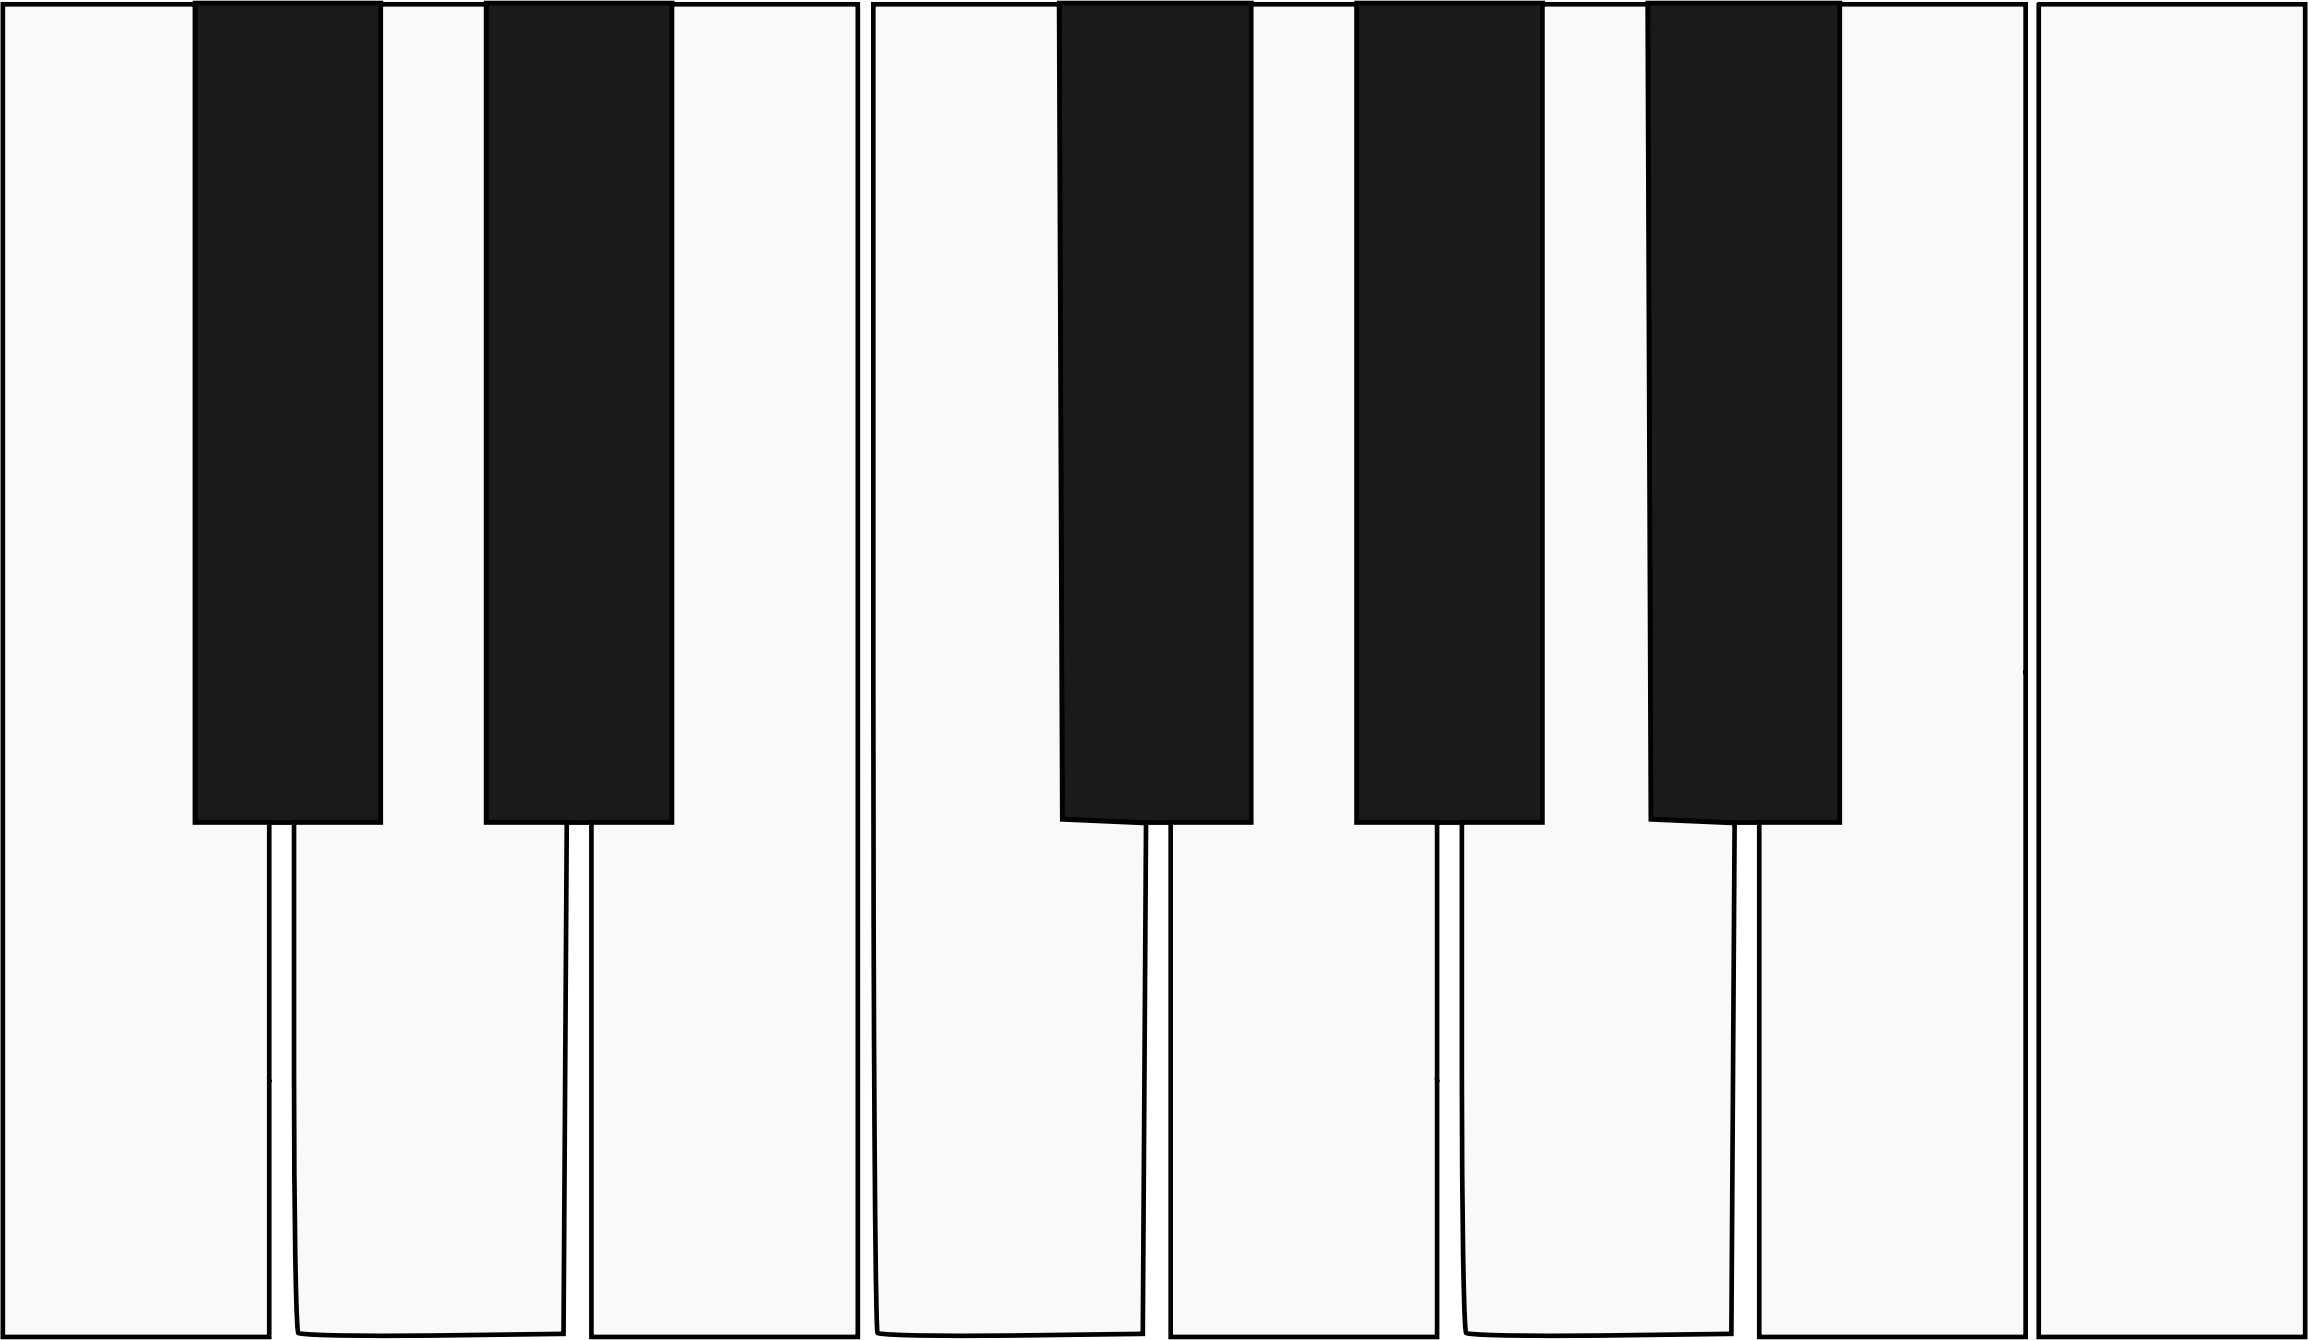 One octave piano keyboard by snifty